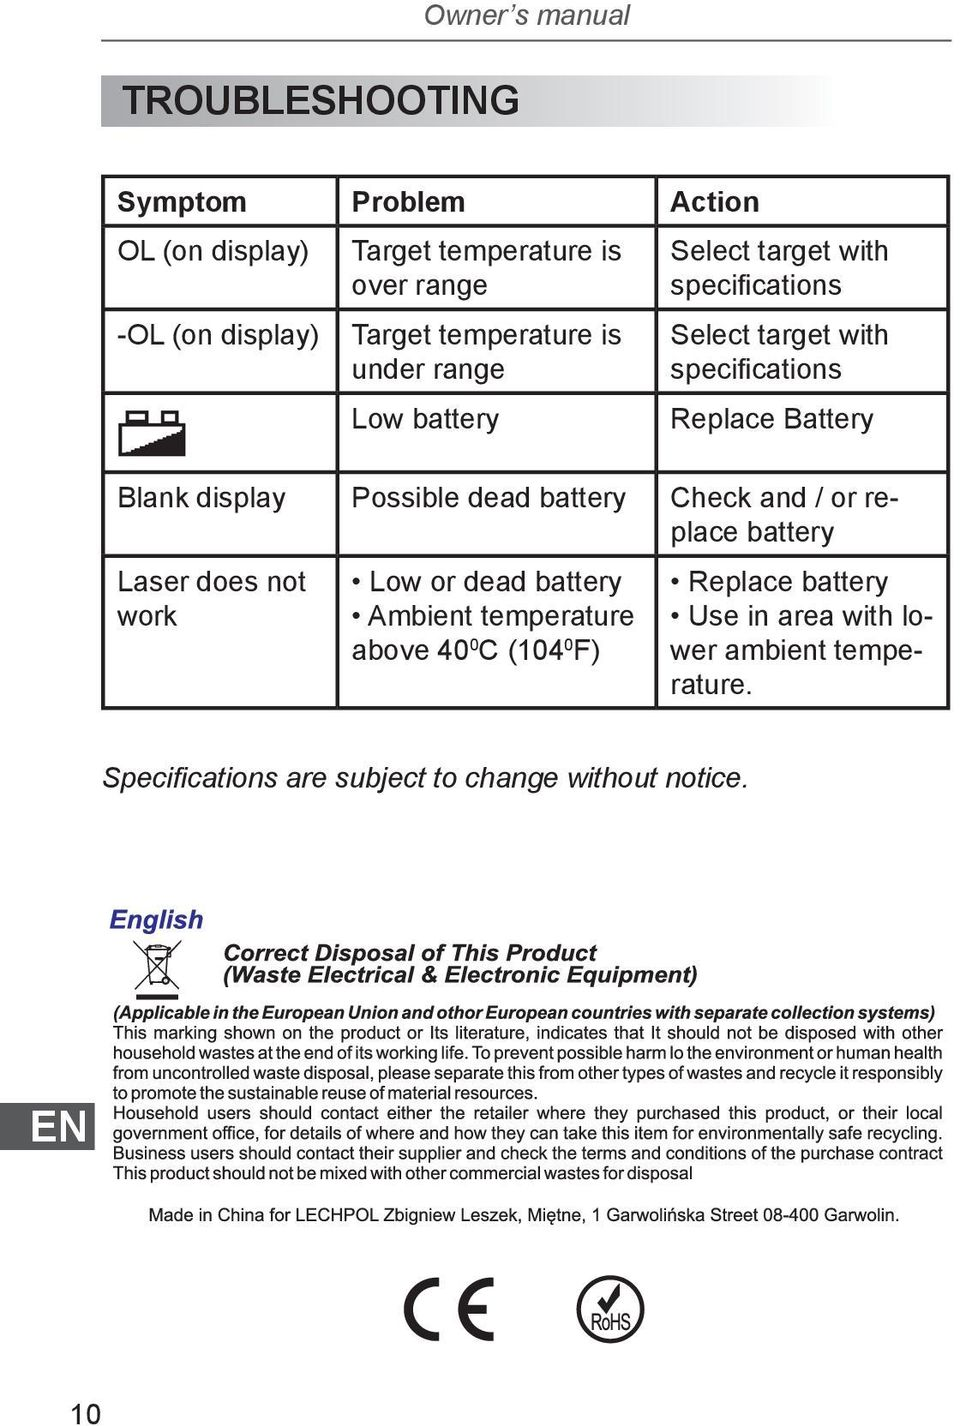 display Possible dead battery Check and / or replace battery Laser does not work Low or dead battery Ambient temperature above 40